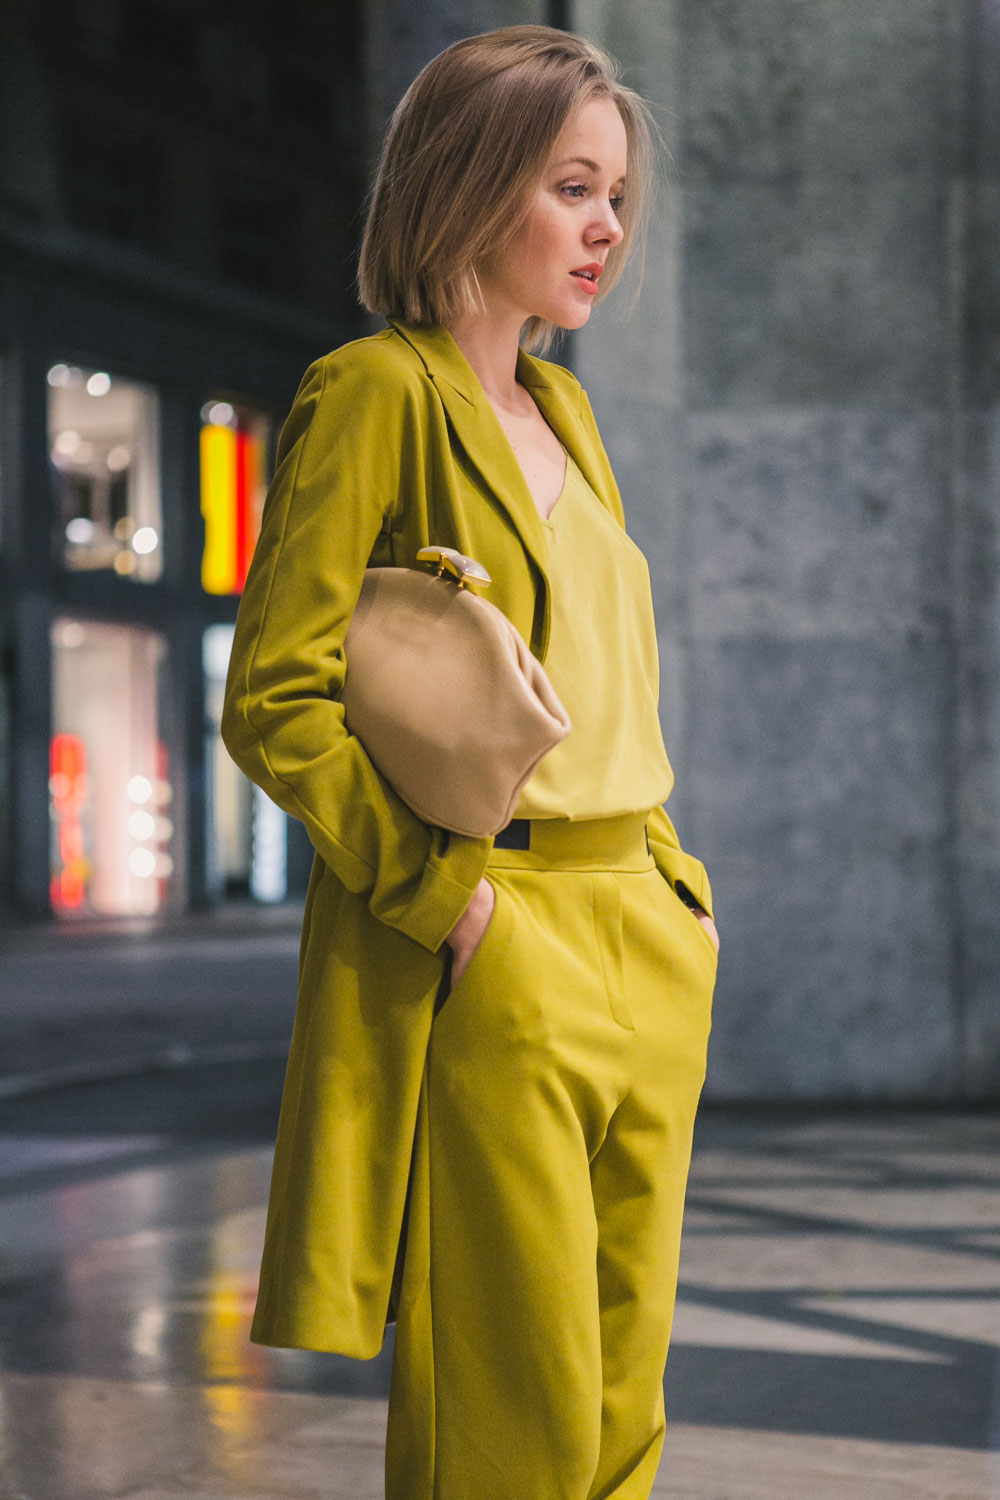 darya-kamalova-fashion-lifestyle-blogger-from-thecablook-on-san-pietro-all-orto-opening-party-in-milan-wears-asos-suit-marni-clutch-burberry-prosum-wedges-7002